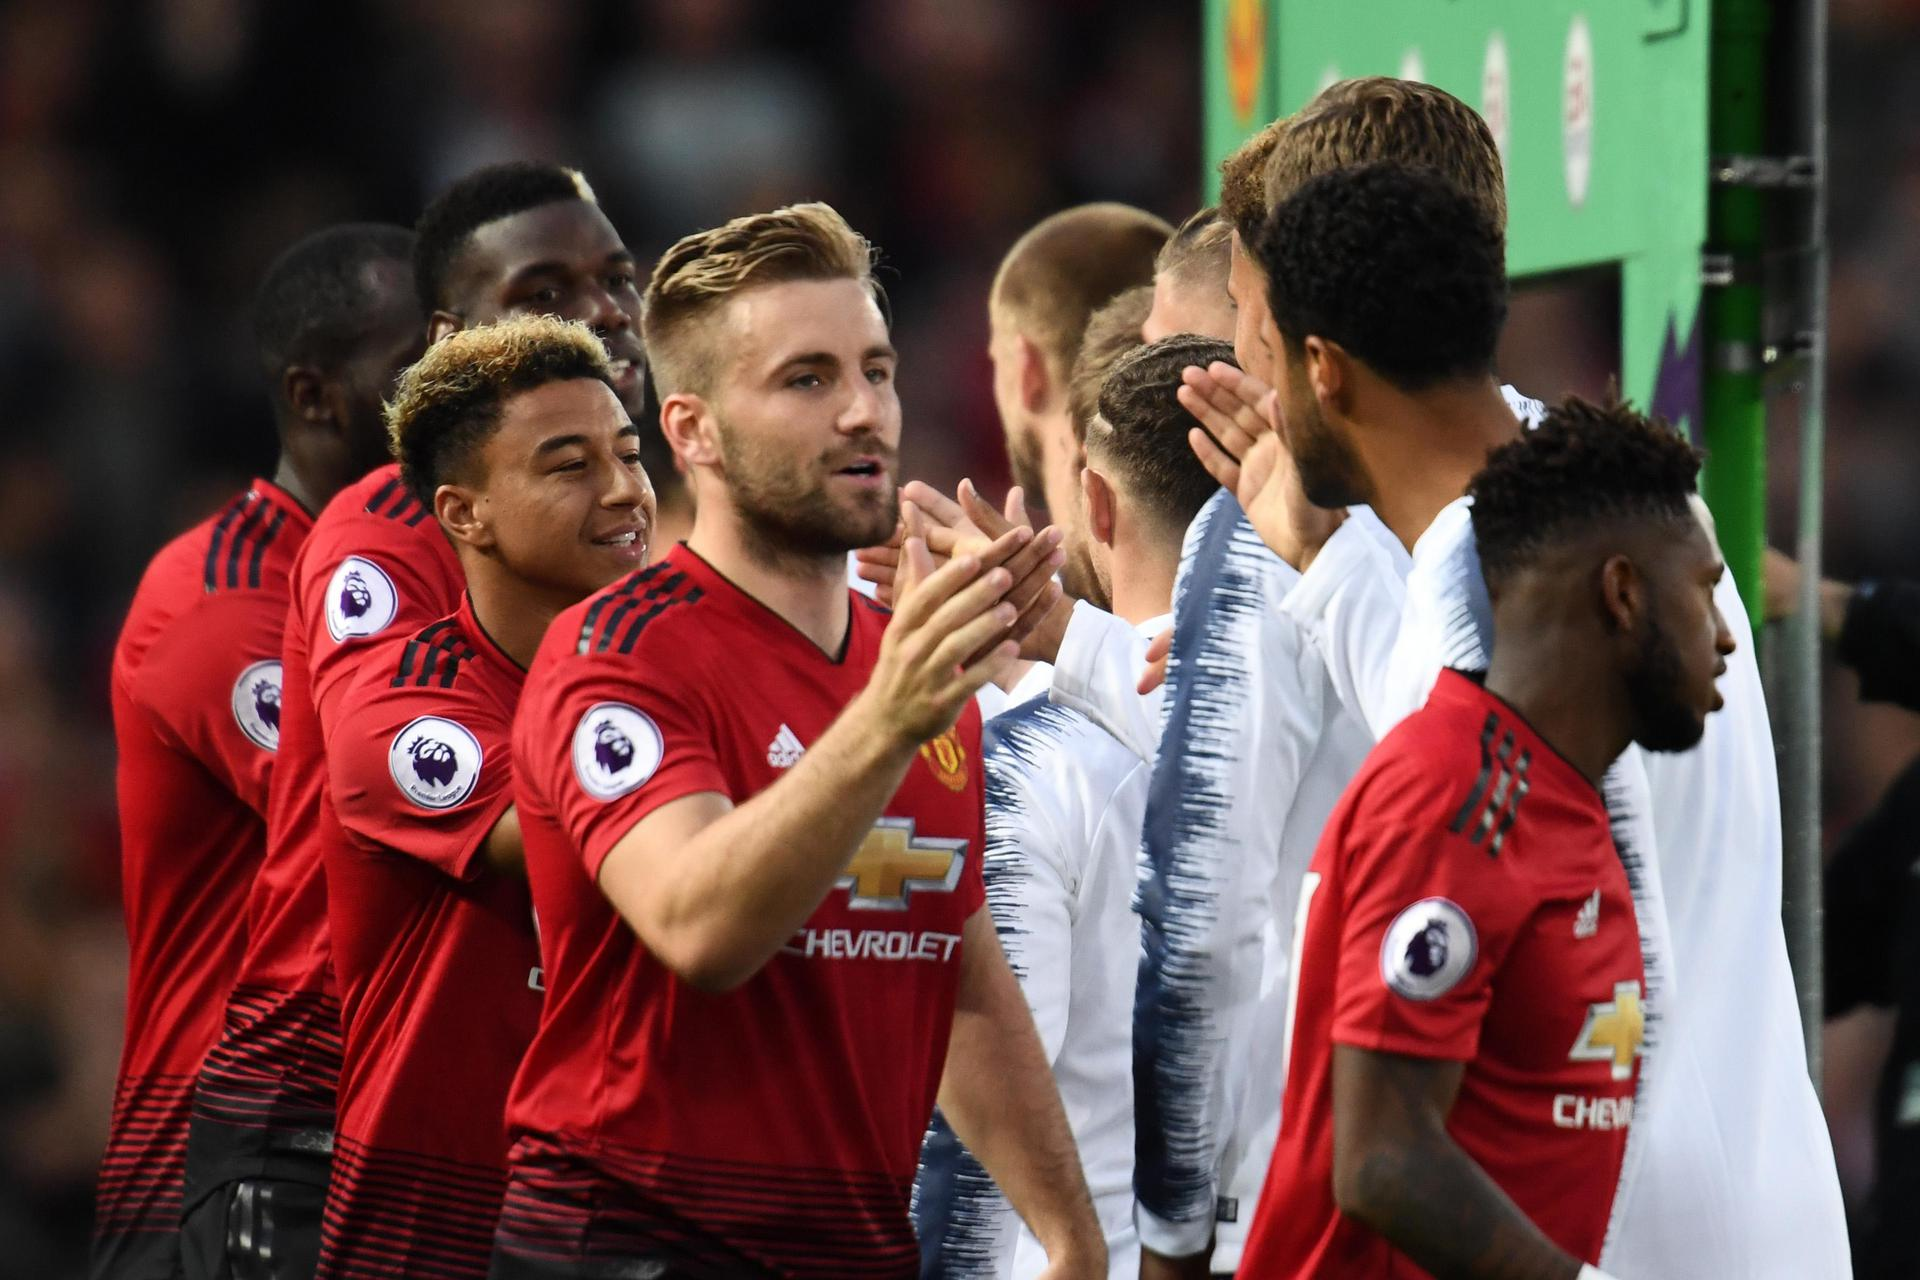 Fred, Luke Shaw and Jesse Lingard and their Manchester United team-mates greet their Tottenham Hotspur opponents ahead of a Premier League match